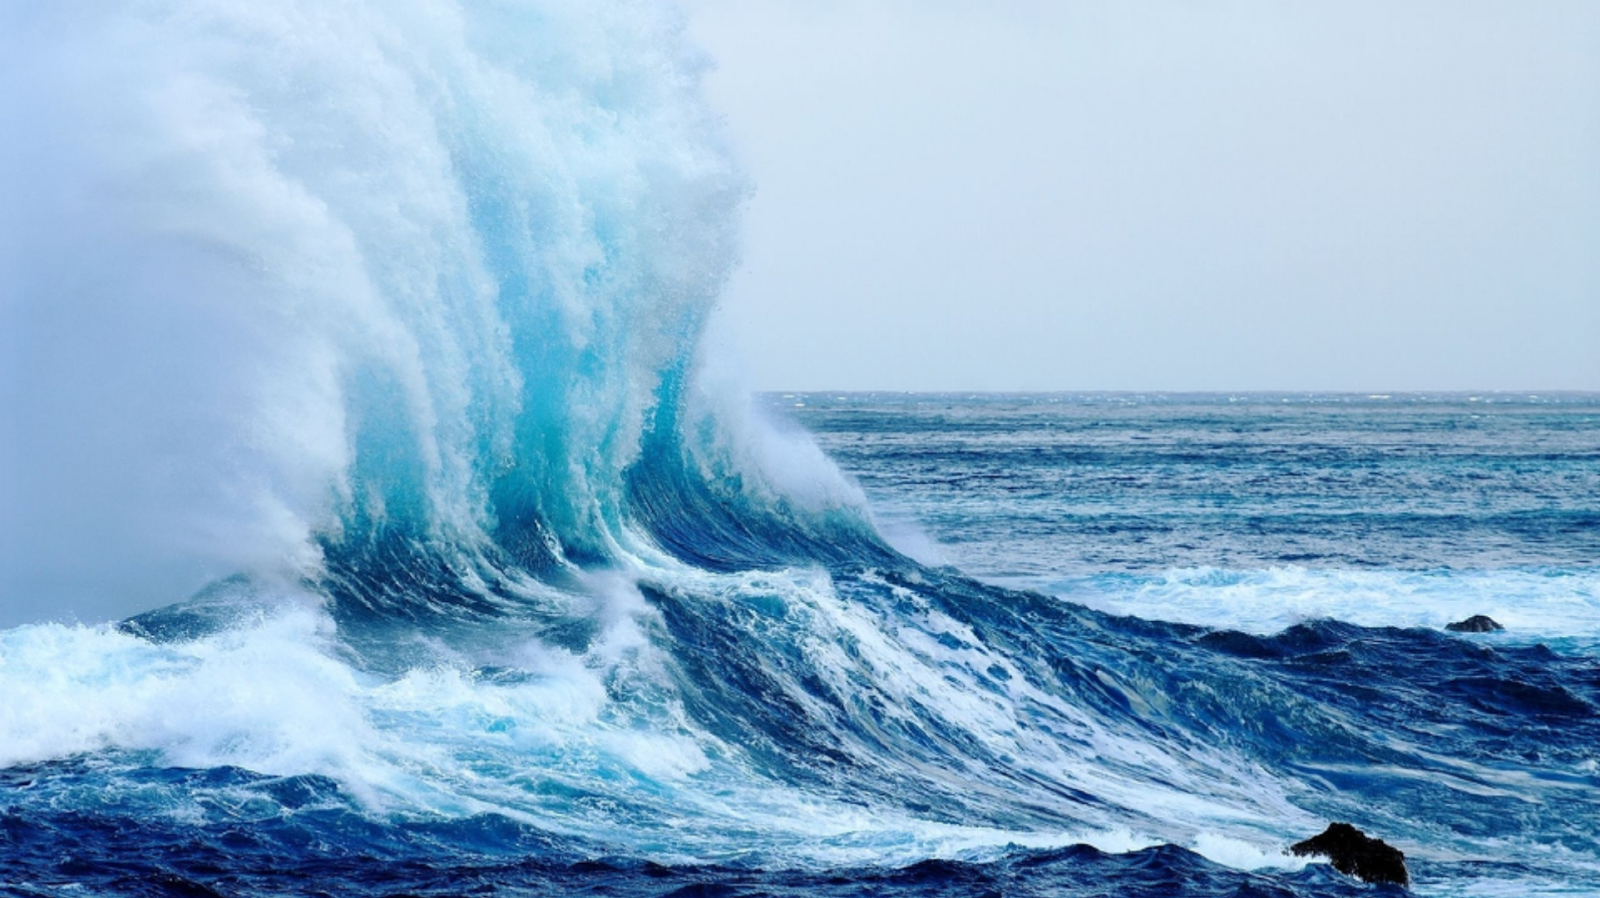 Great Waves Strong That Successfully Photographed Heres A Beautiful Image Of Ocean For Your Wallpaper